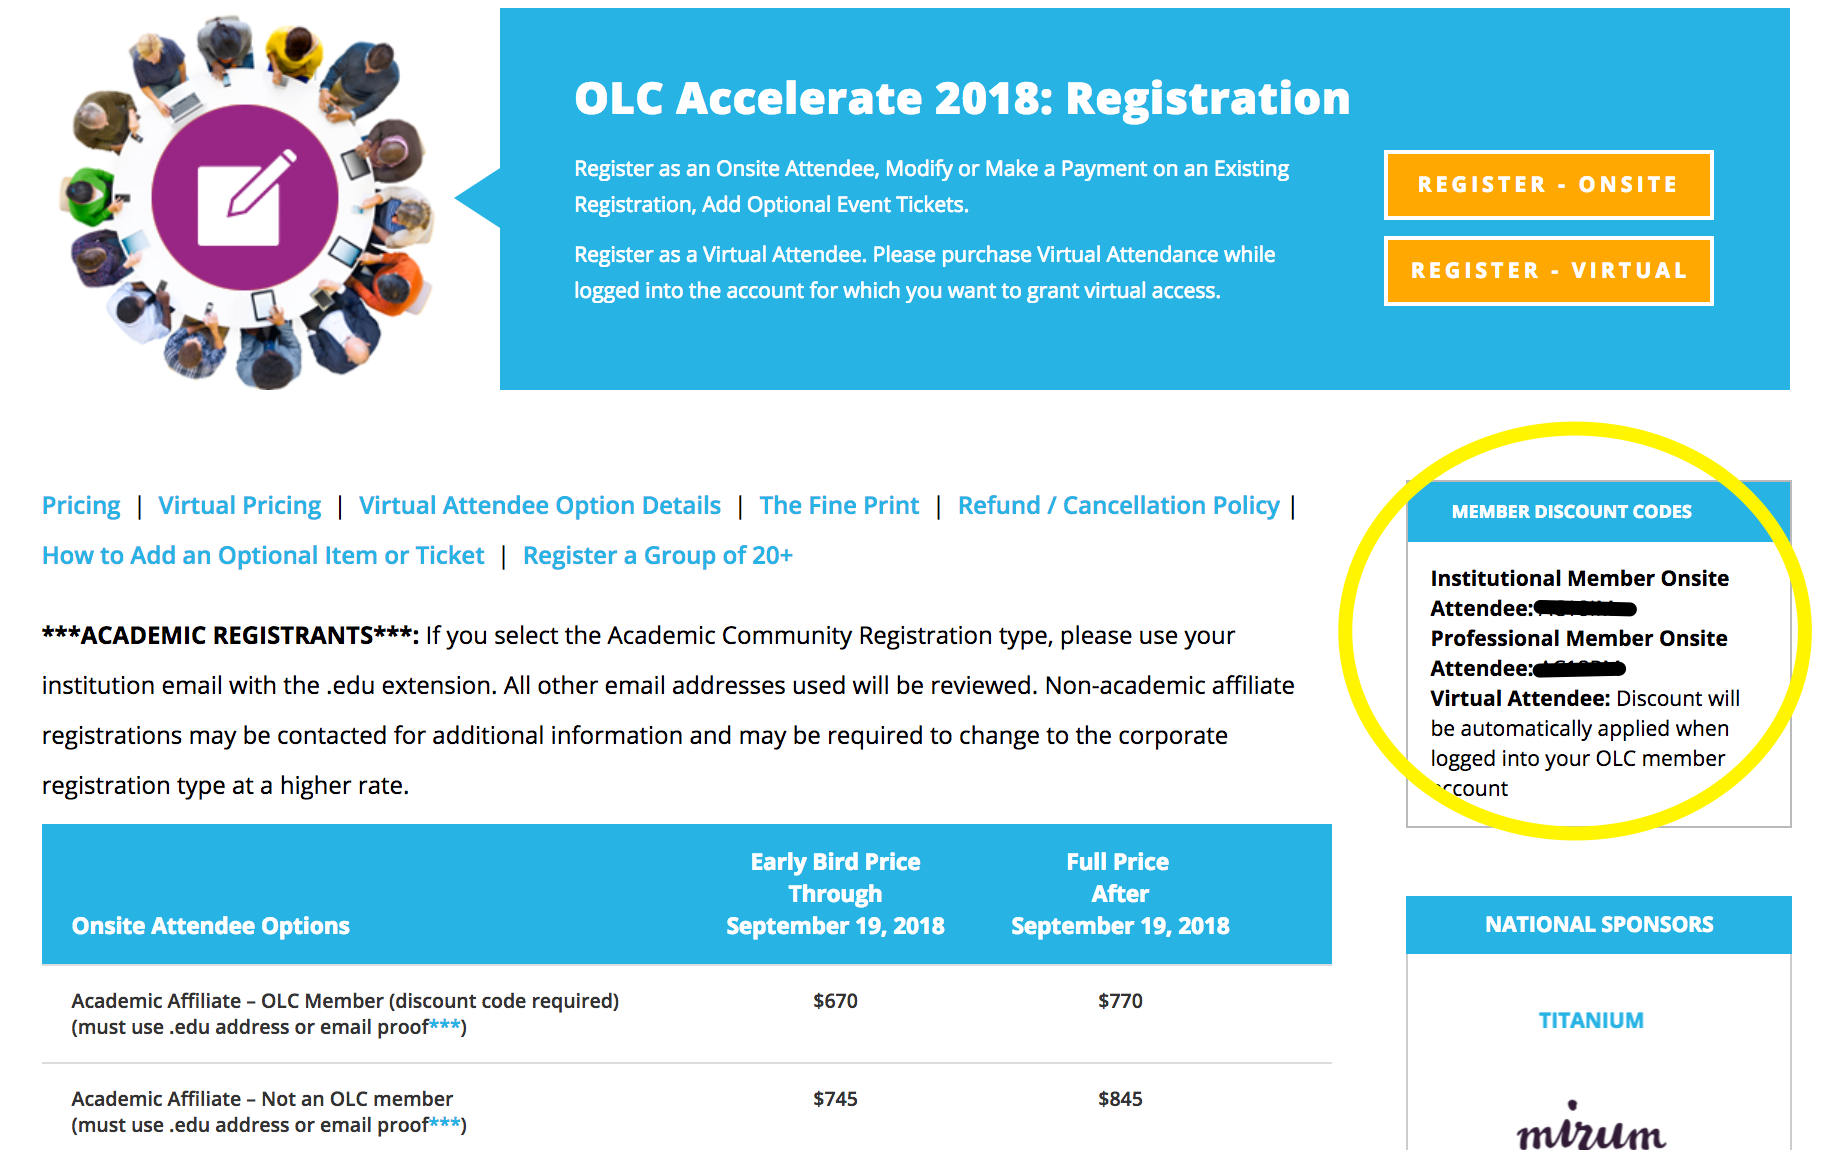 OLC Accelerate 2018 - Member Discount Code Location